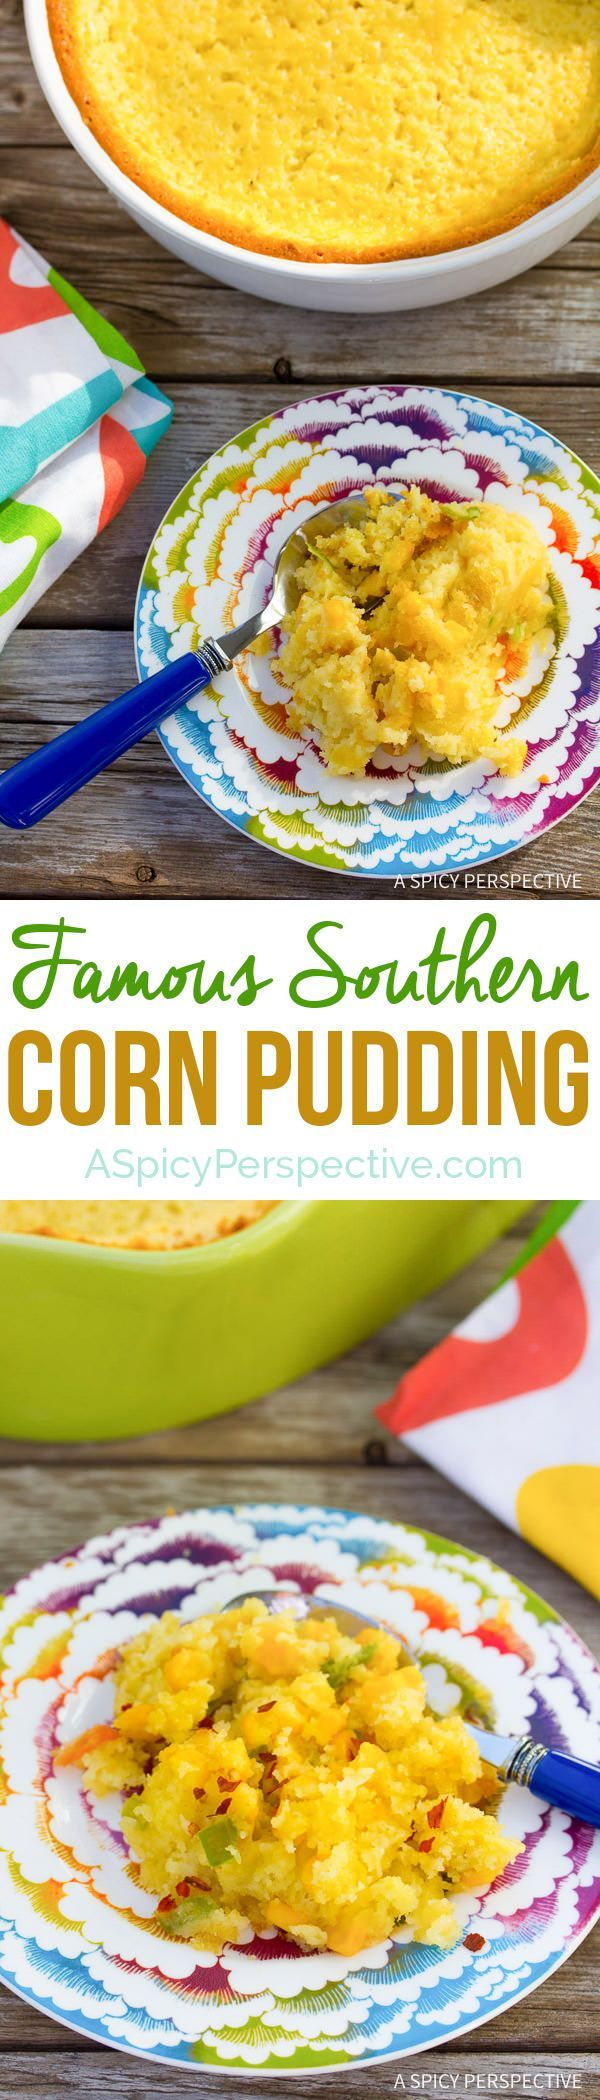 "Try this for the holidays - Famous Corn Pudding Recipe on ASpicyPerspective.com. Known as ""Damn Good Corn Pudding"" in Asheville, NC. #thanksgiving"